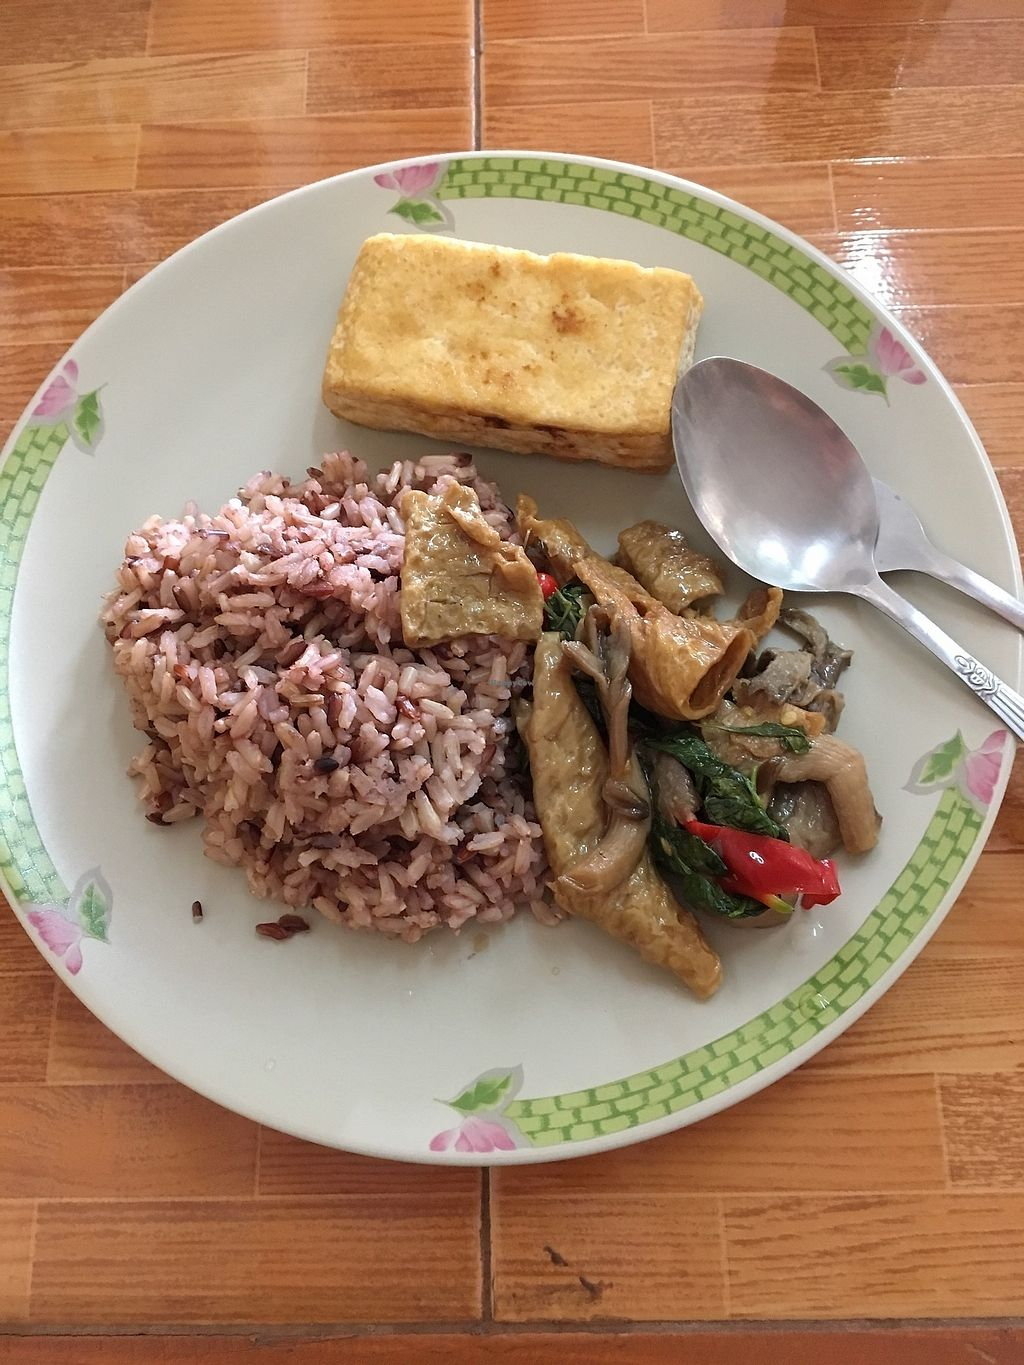 """Photo of Phartom  by <a href=""""/members/profile/_zelisa"""">_zelisa</a> <br/>Rice with tofu and mushrooms/mock meat  <br/> November 29, 2017  - <a href='/contact/abuse/image/74515/330357'>Report</a>"""